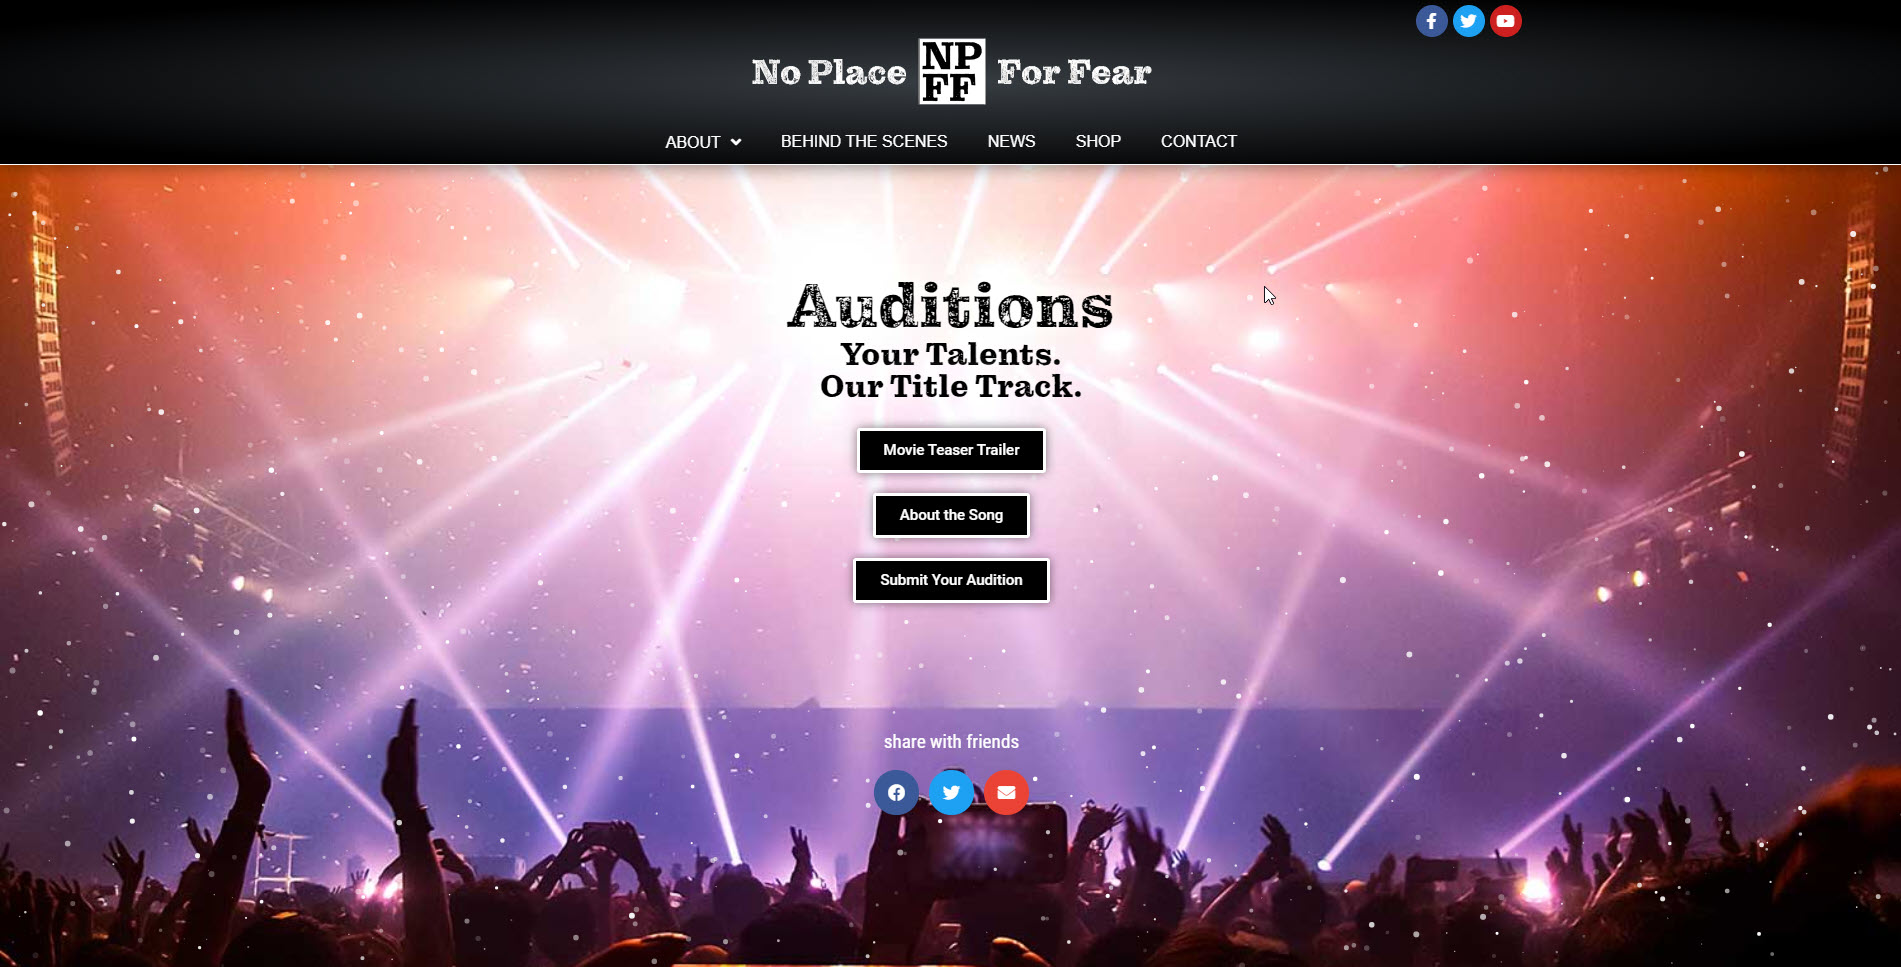 No Place For Fear song audition program developed by Virbion